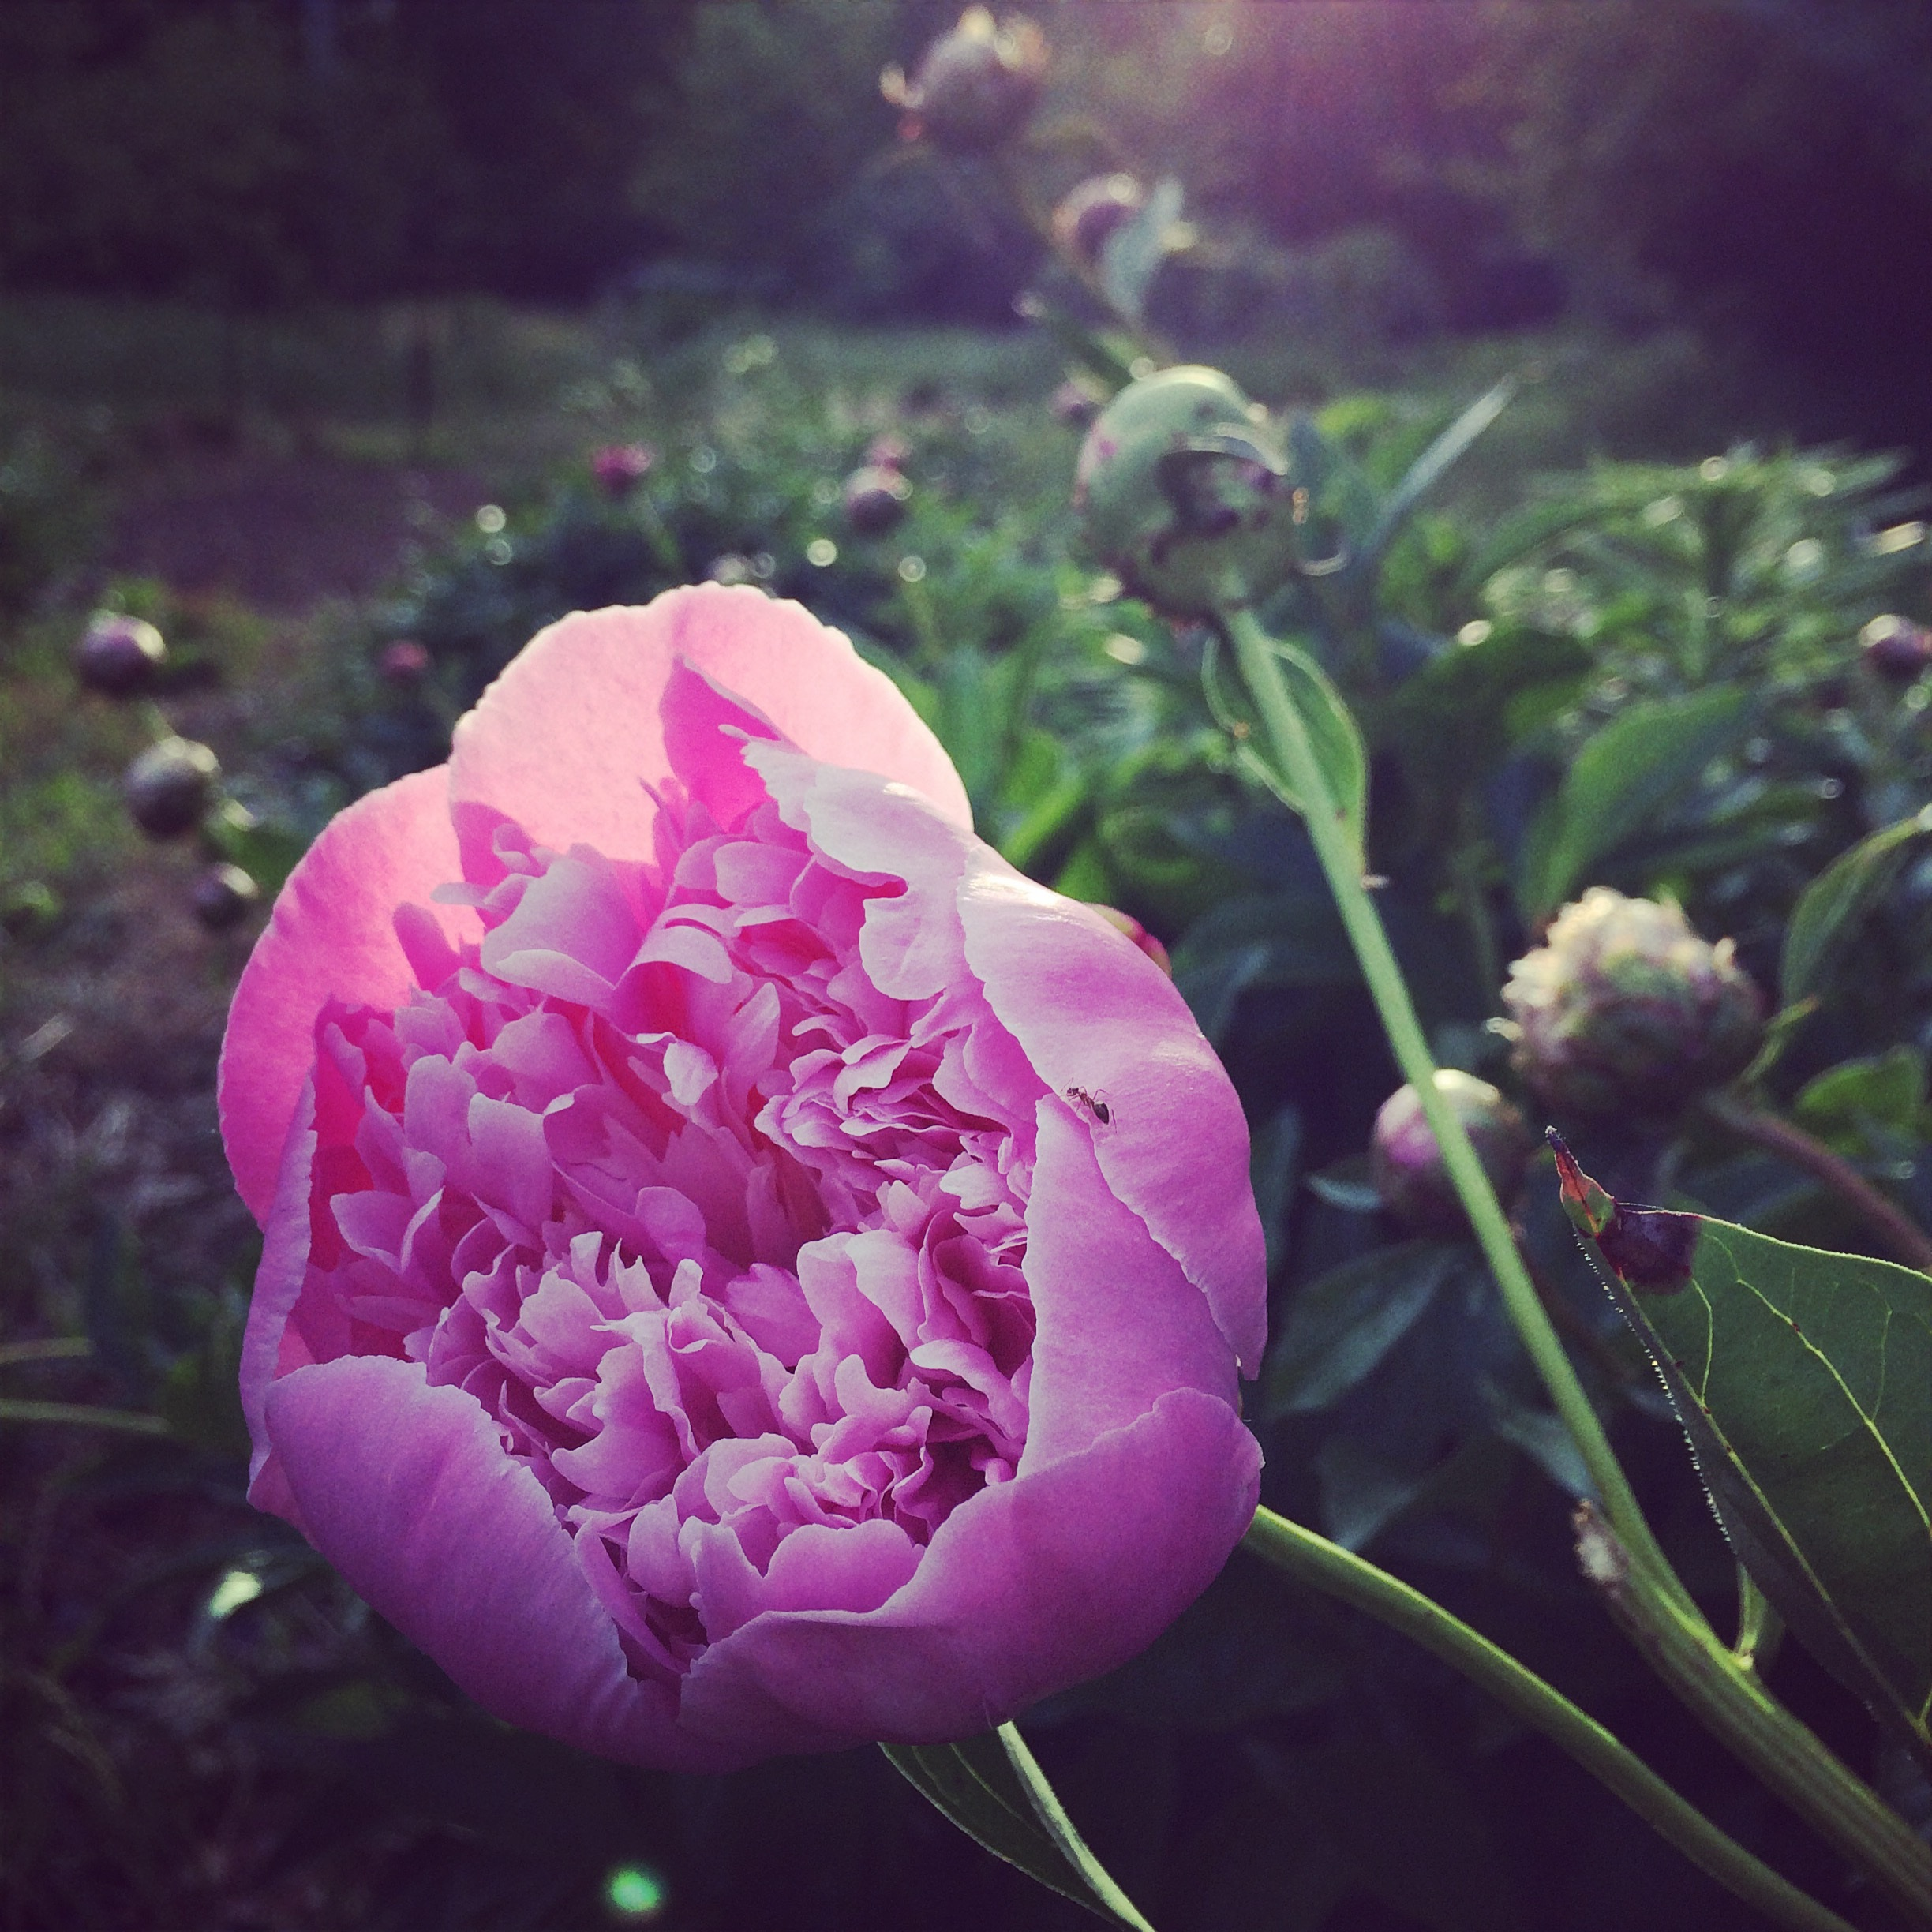 The Peonies are Here! - Let's have a parade! or at least make peony syrup